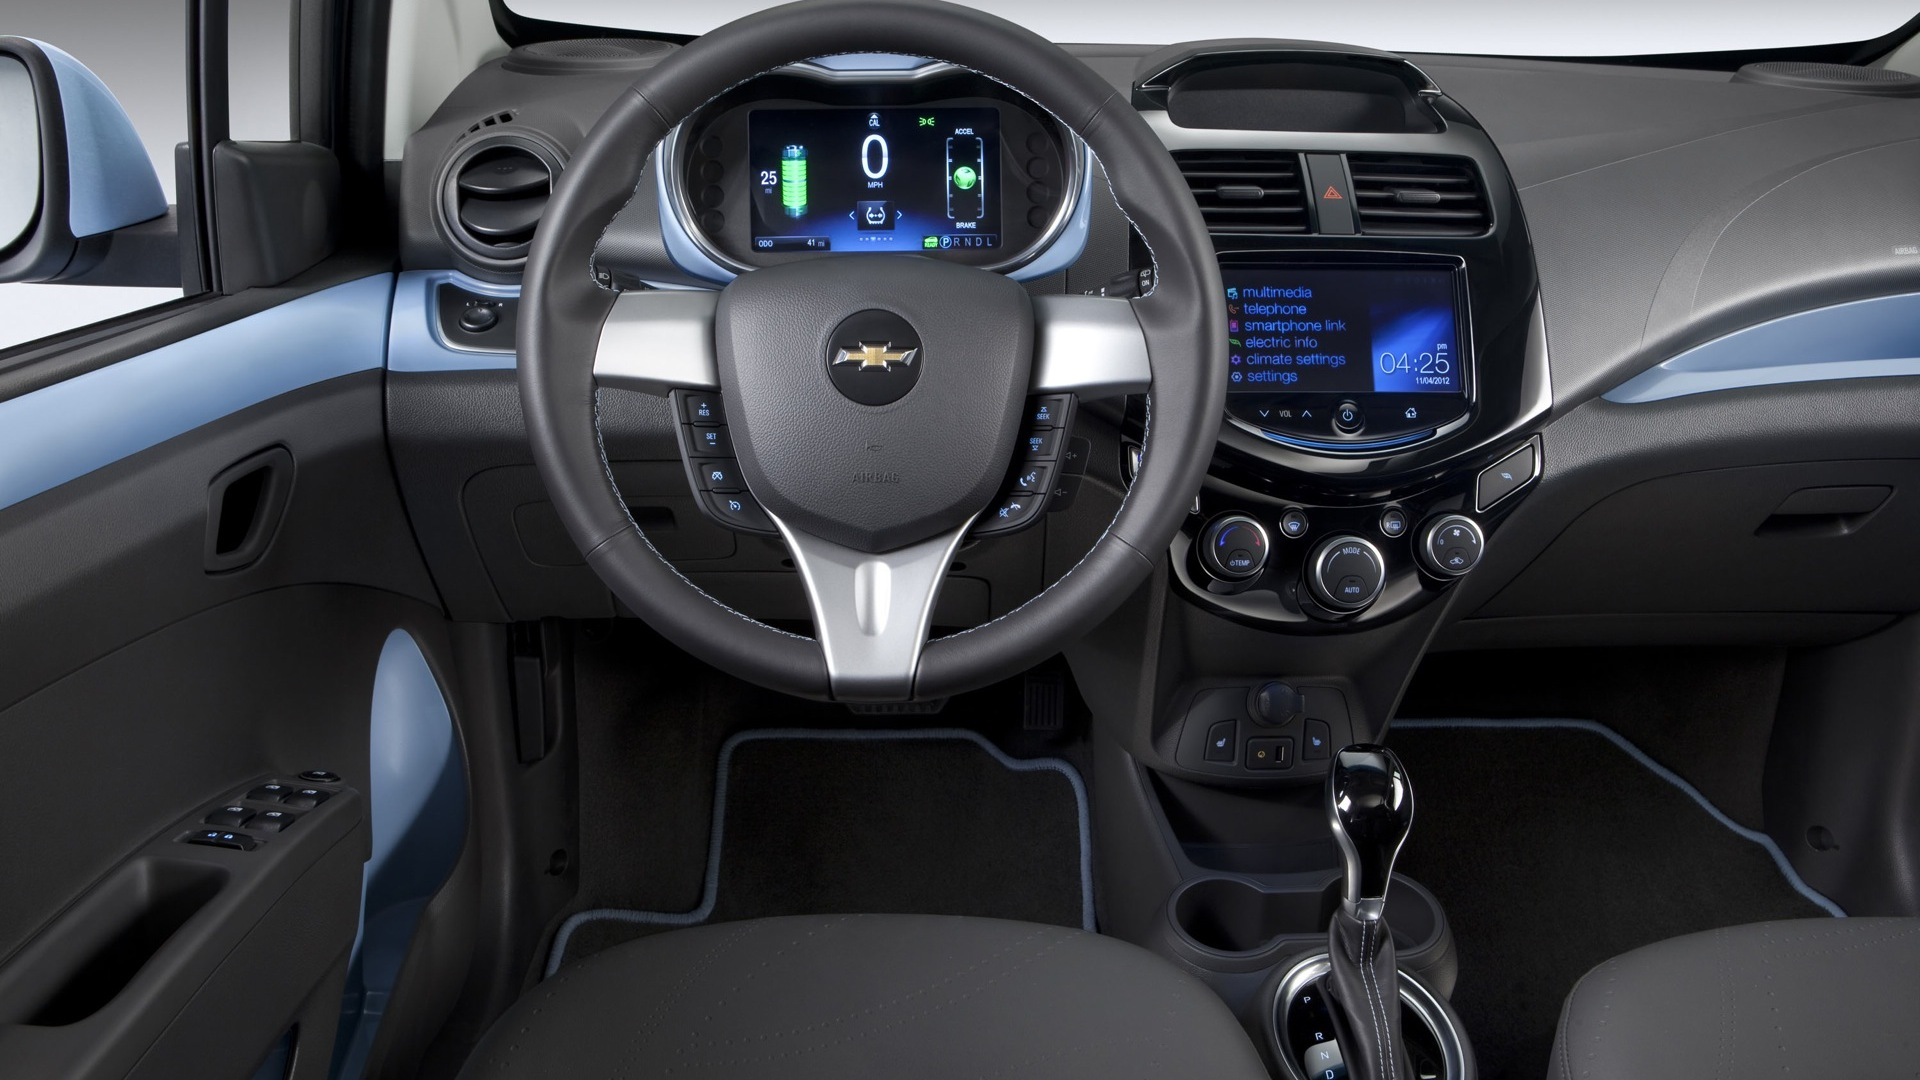 Chevrolet Spark 2013 LT - Price, Mileage, Reviews, Specification ...